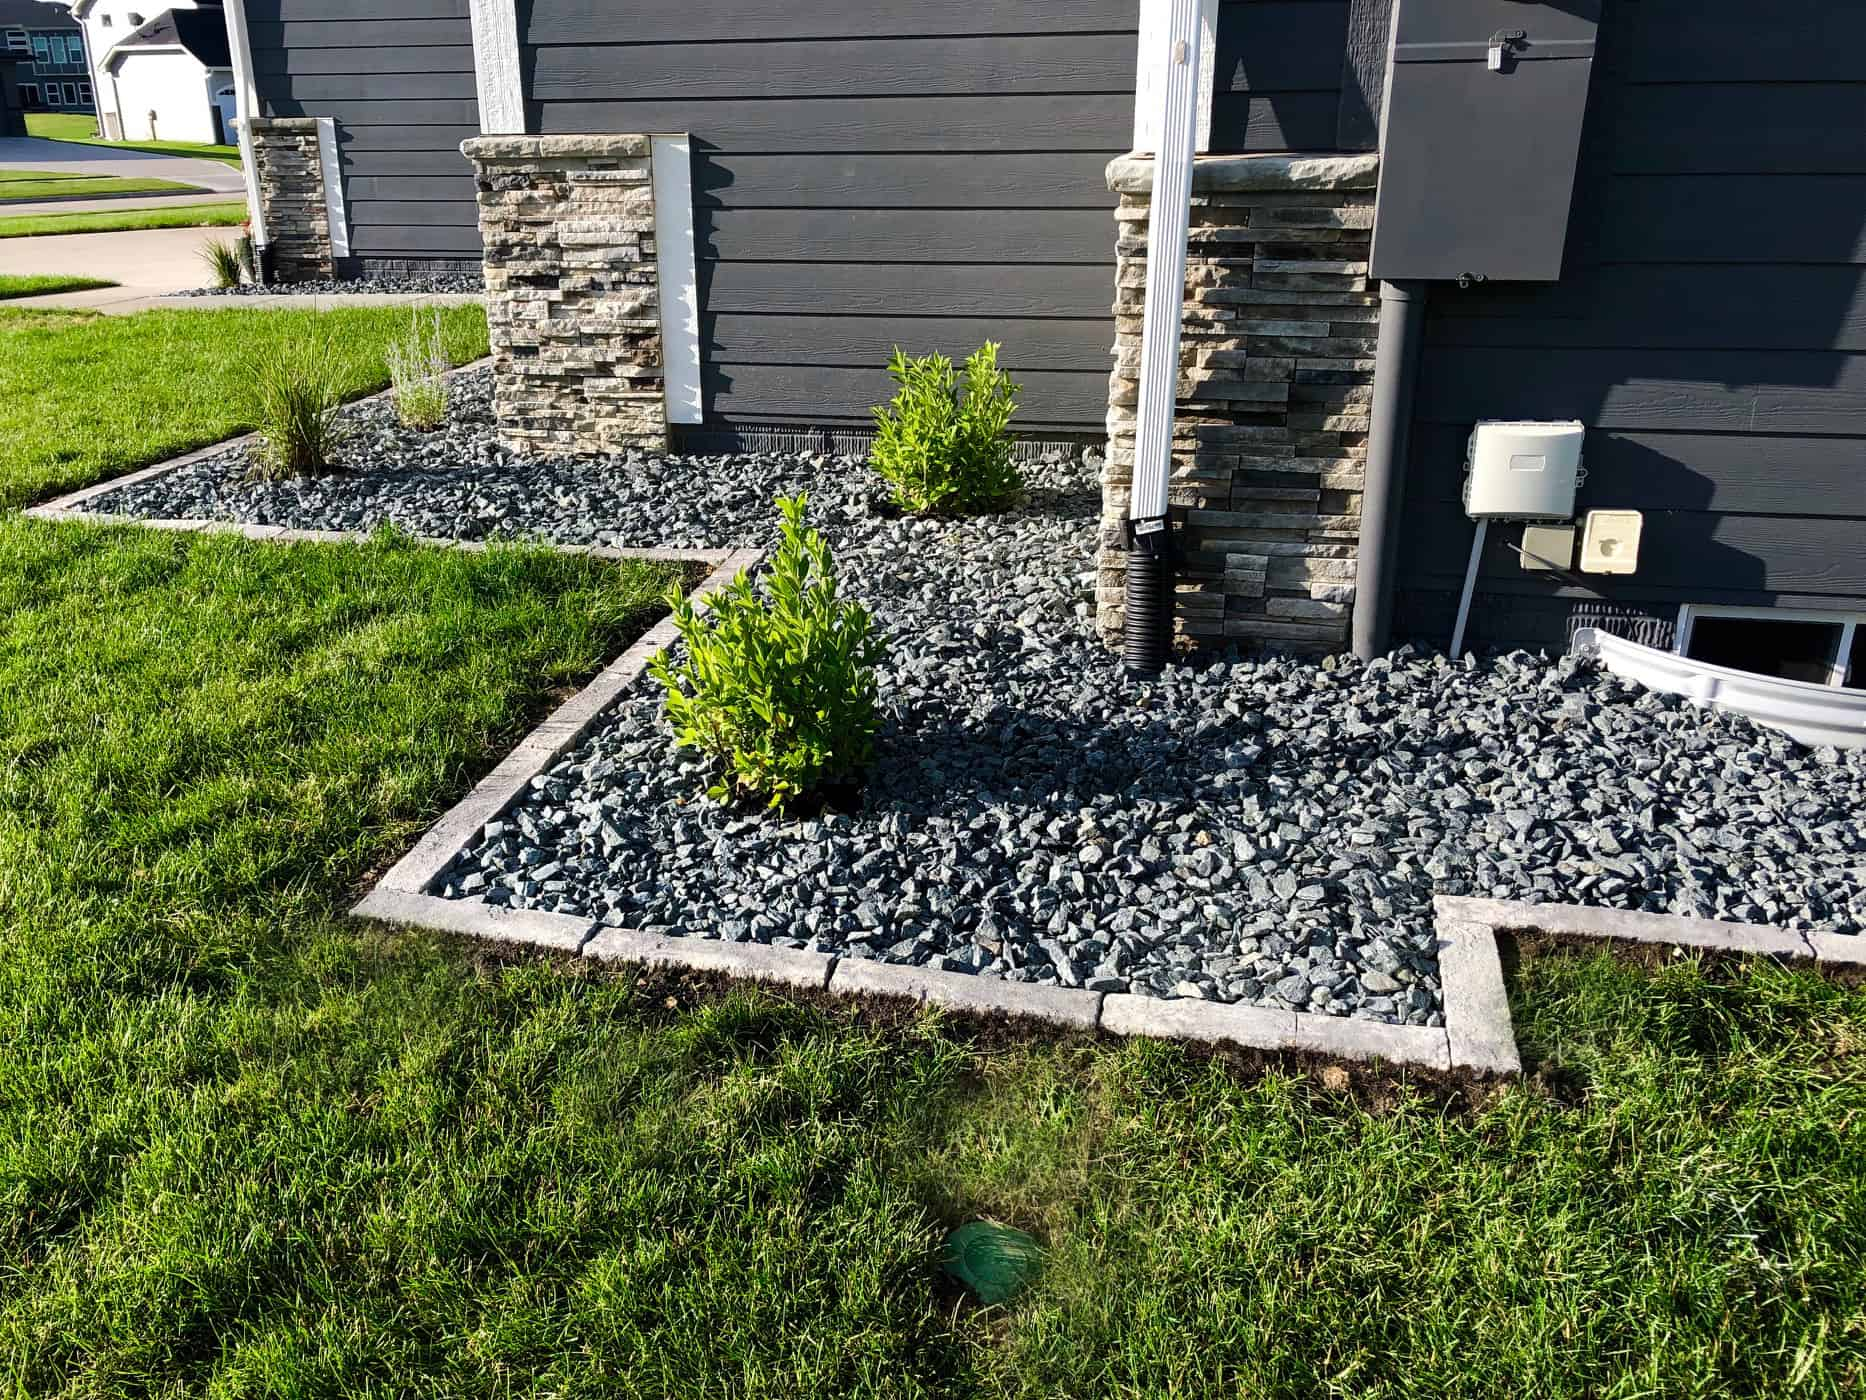 landscaping edging in Rosetta Bordo